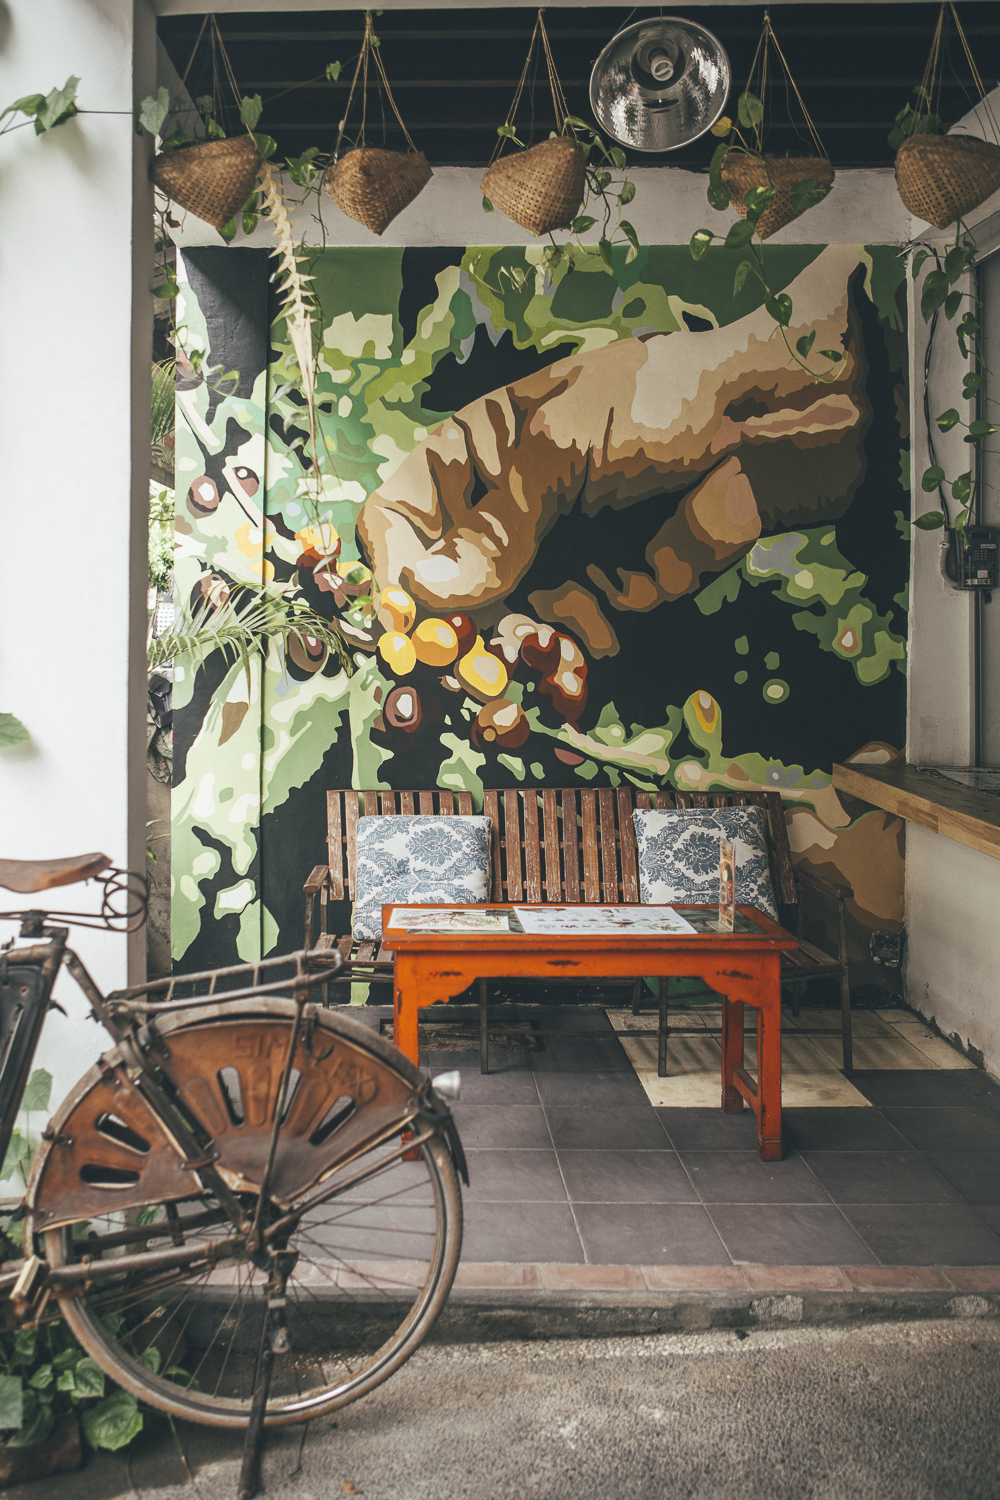 Bali Food guide: The Koop Cafe